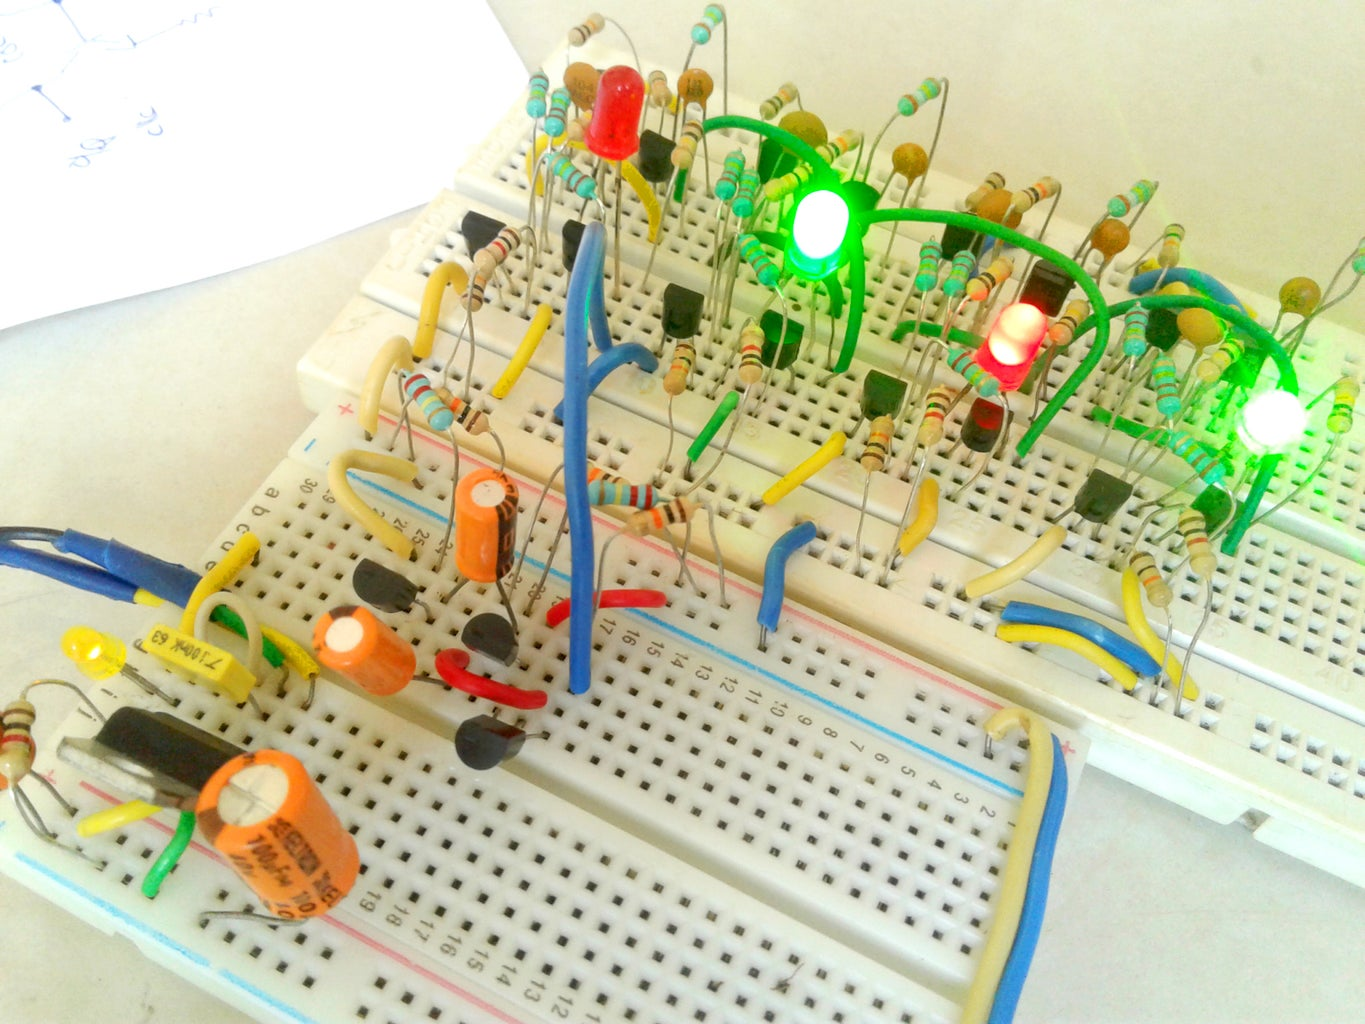 Connecting the Clock Circuit With Counter